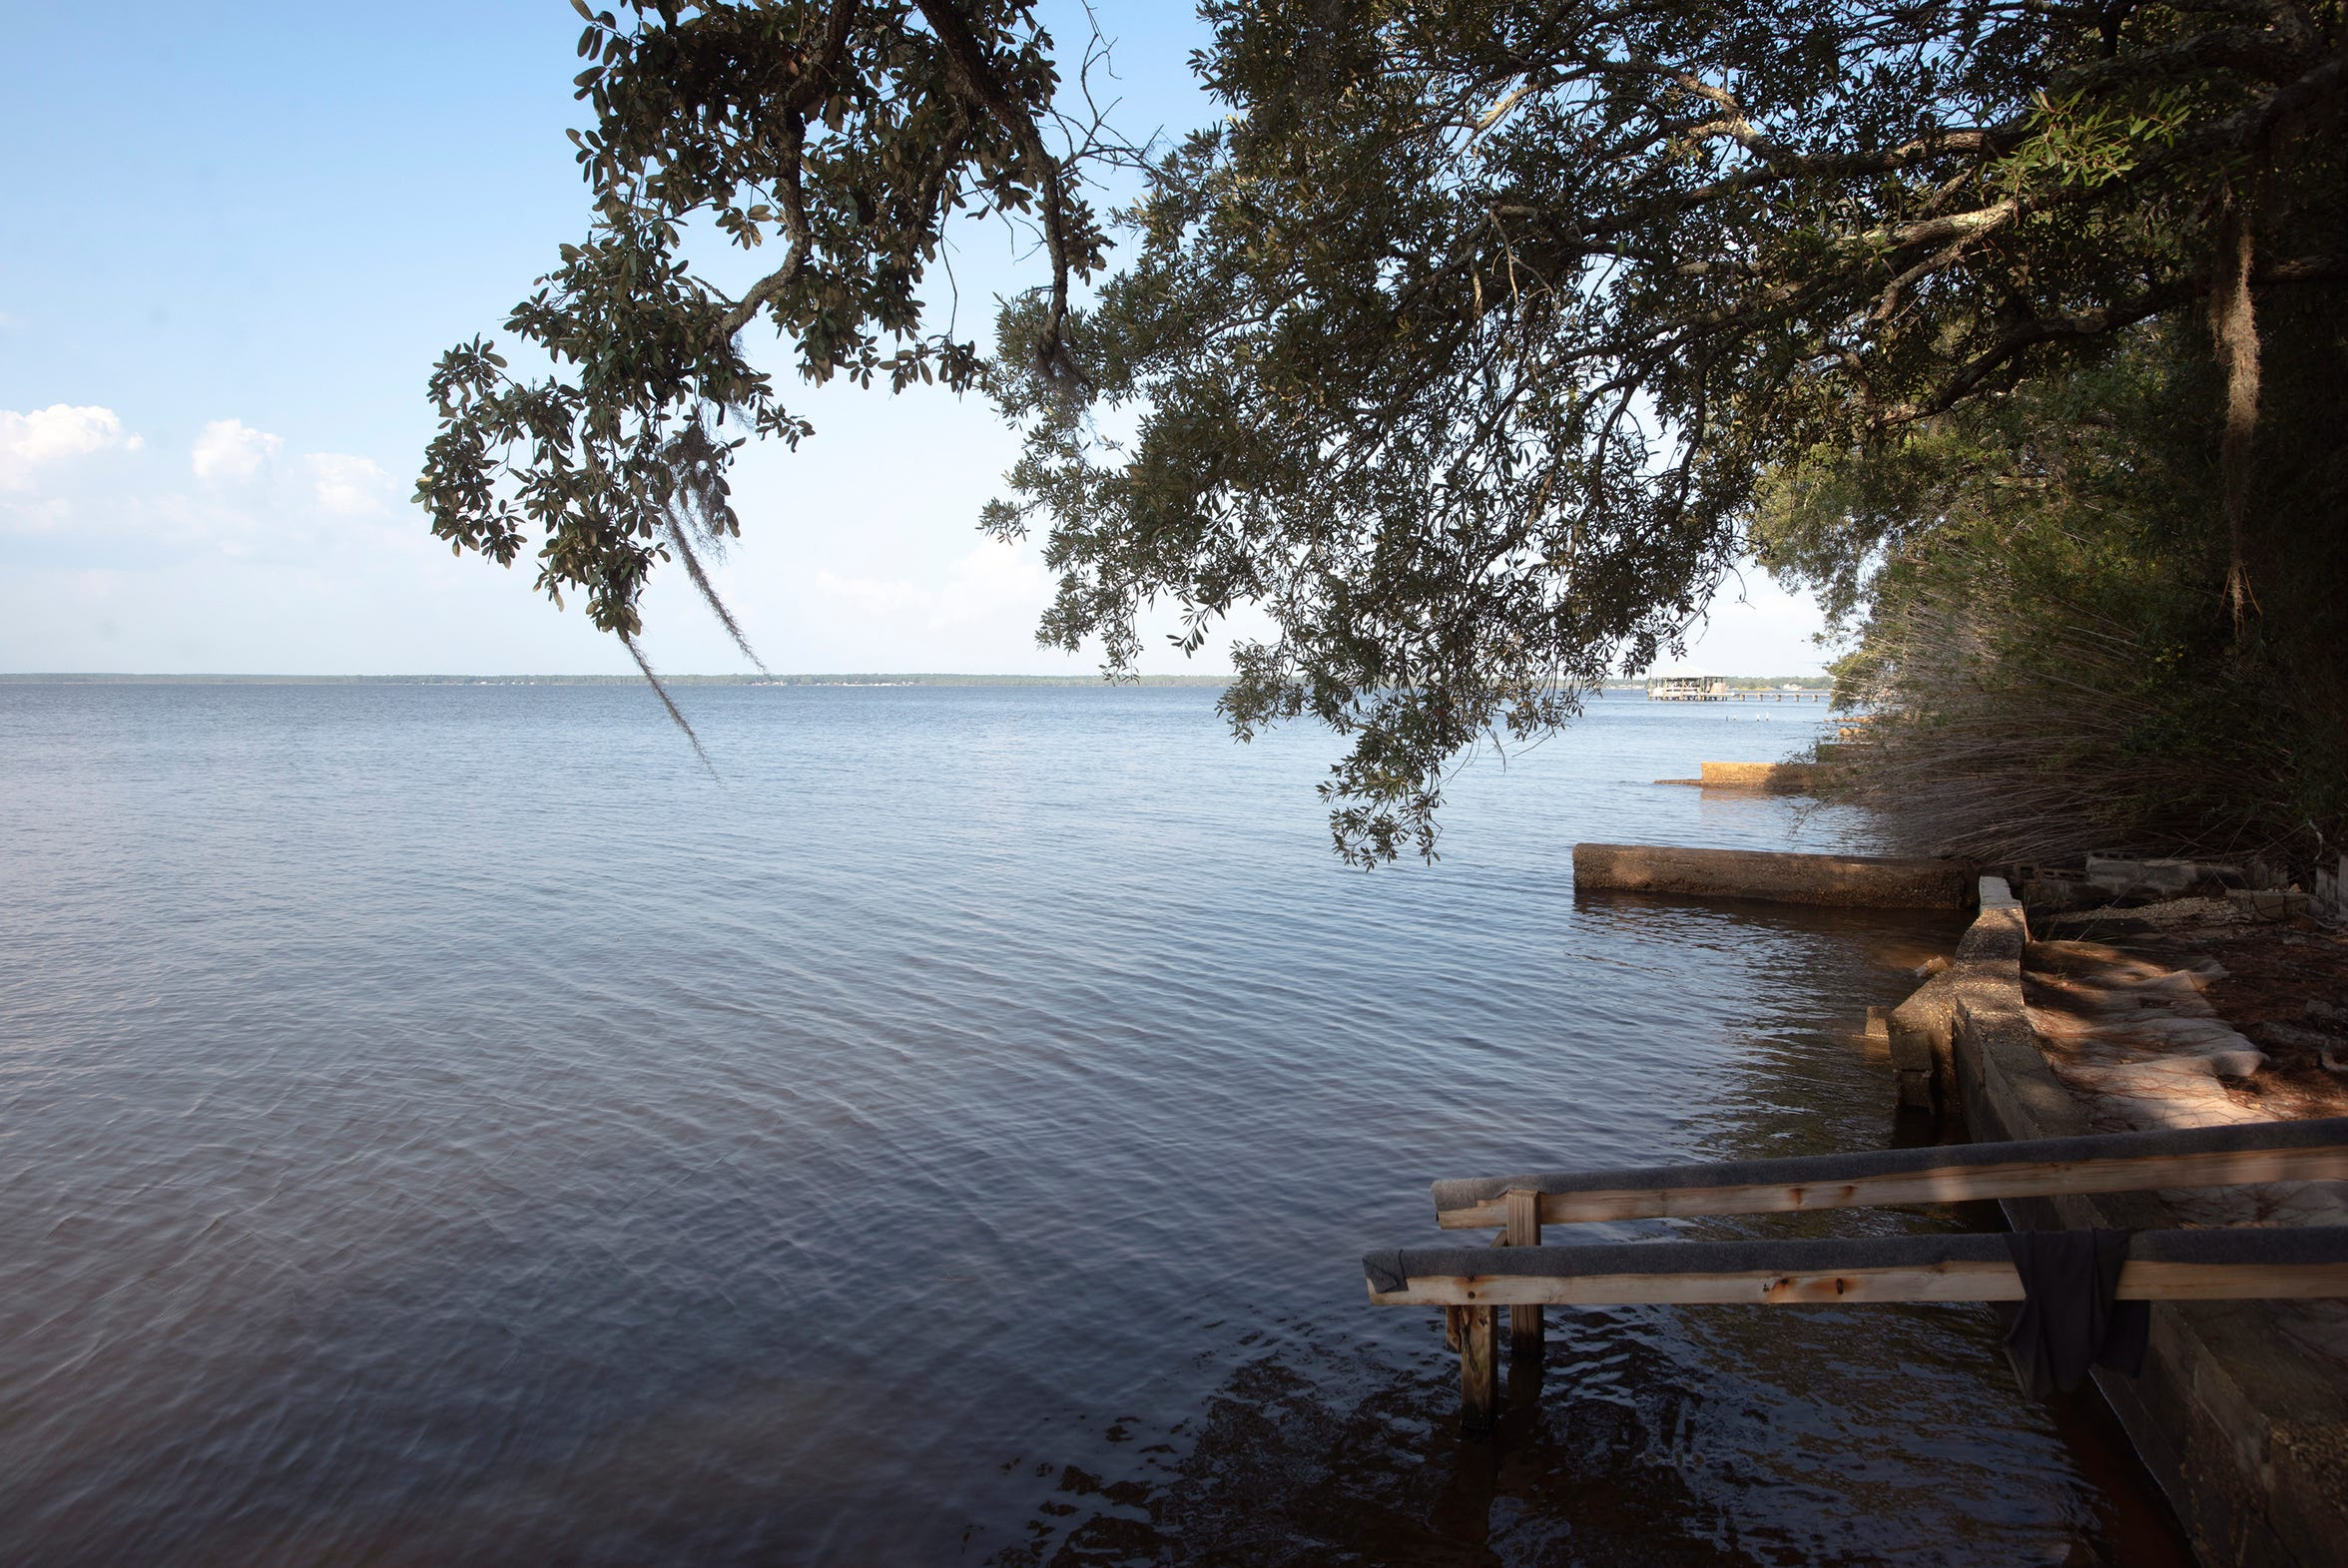 The calm and tranquil waters off Perdido Bay tested positive for high alkaline levels on Thursday, Oct. 3, 2019.